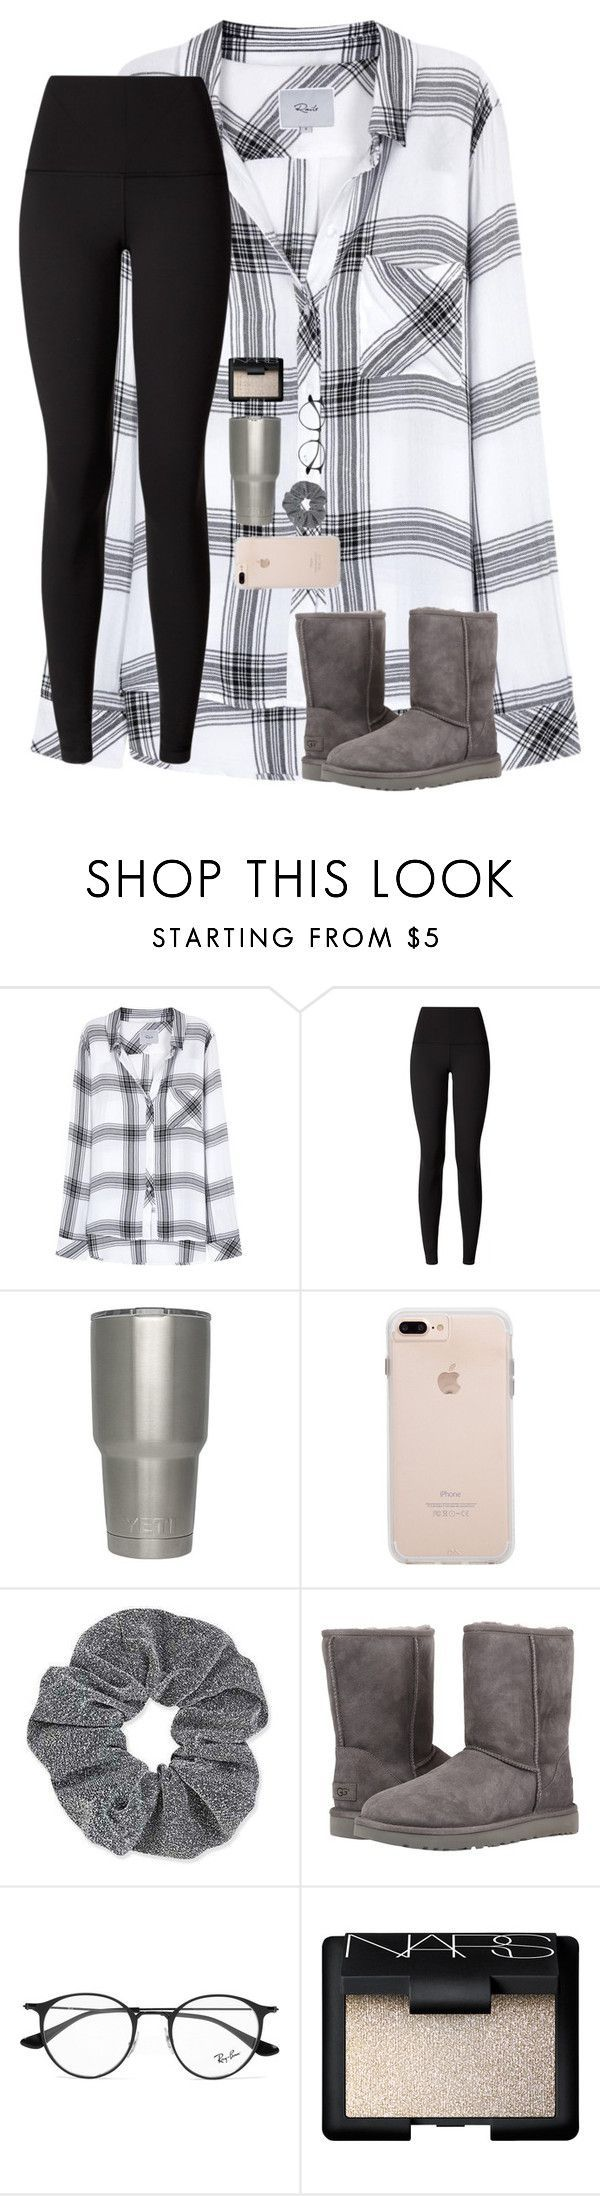 2 Days Until Christmas!RTD by preppy-dreamer ❤ liked on Polyvore featuring Rails, lululemon, Topshop, UGG Australia, Ray-Ban and NARS Cosmetics